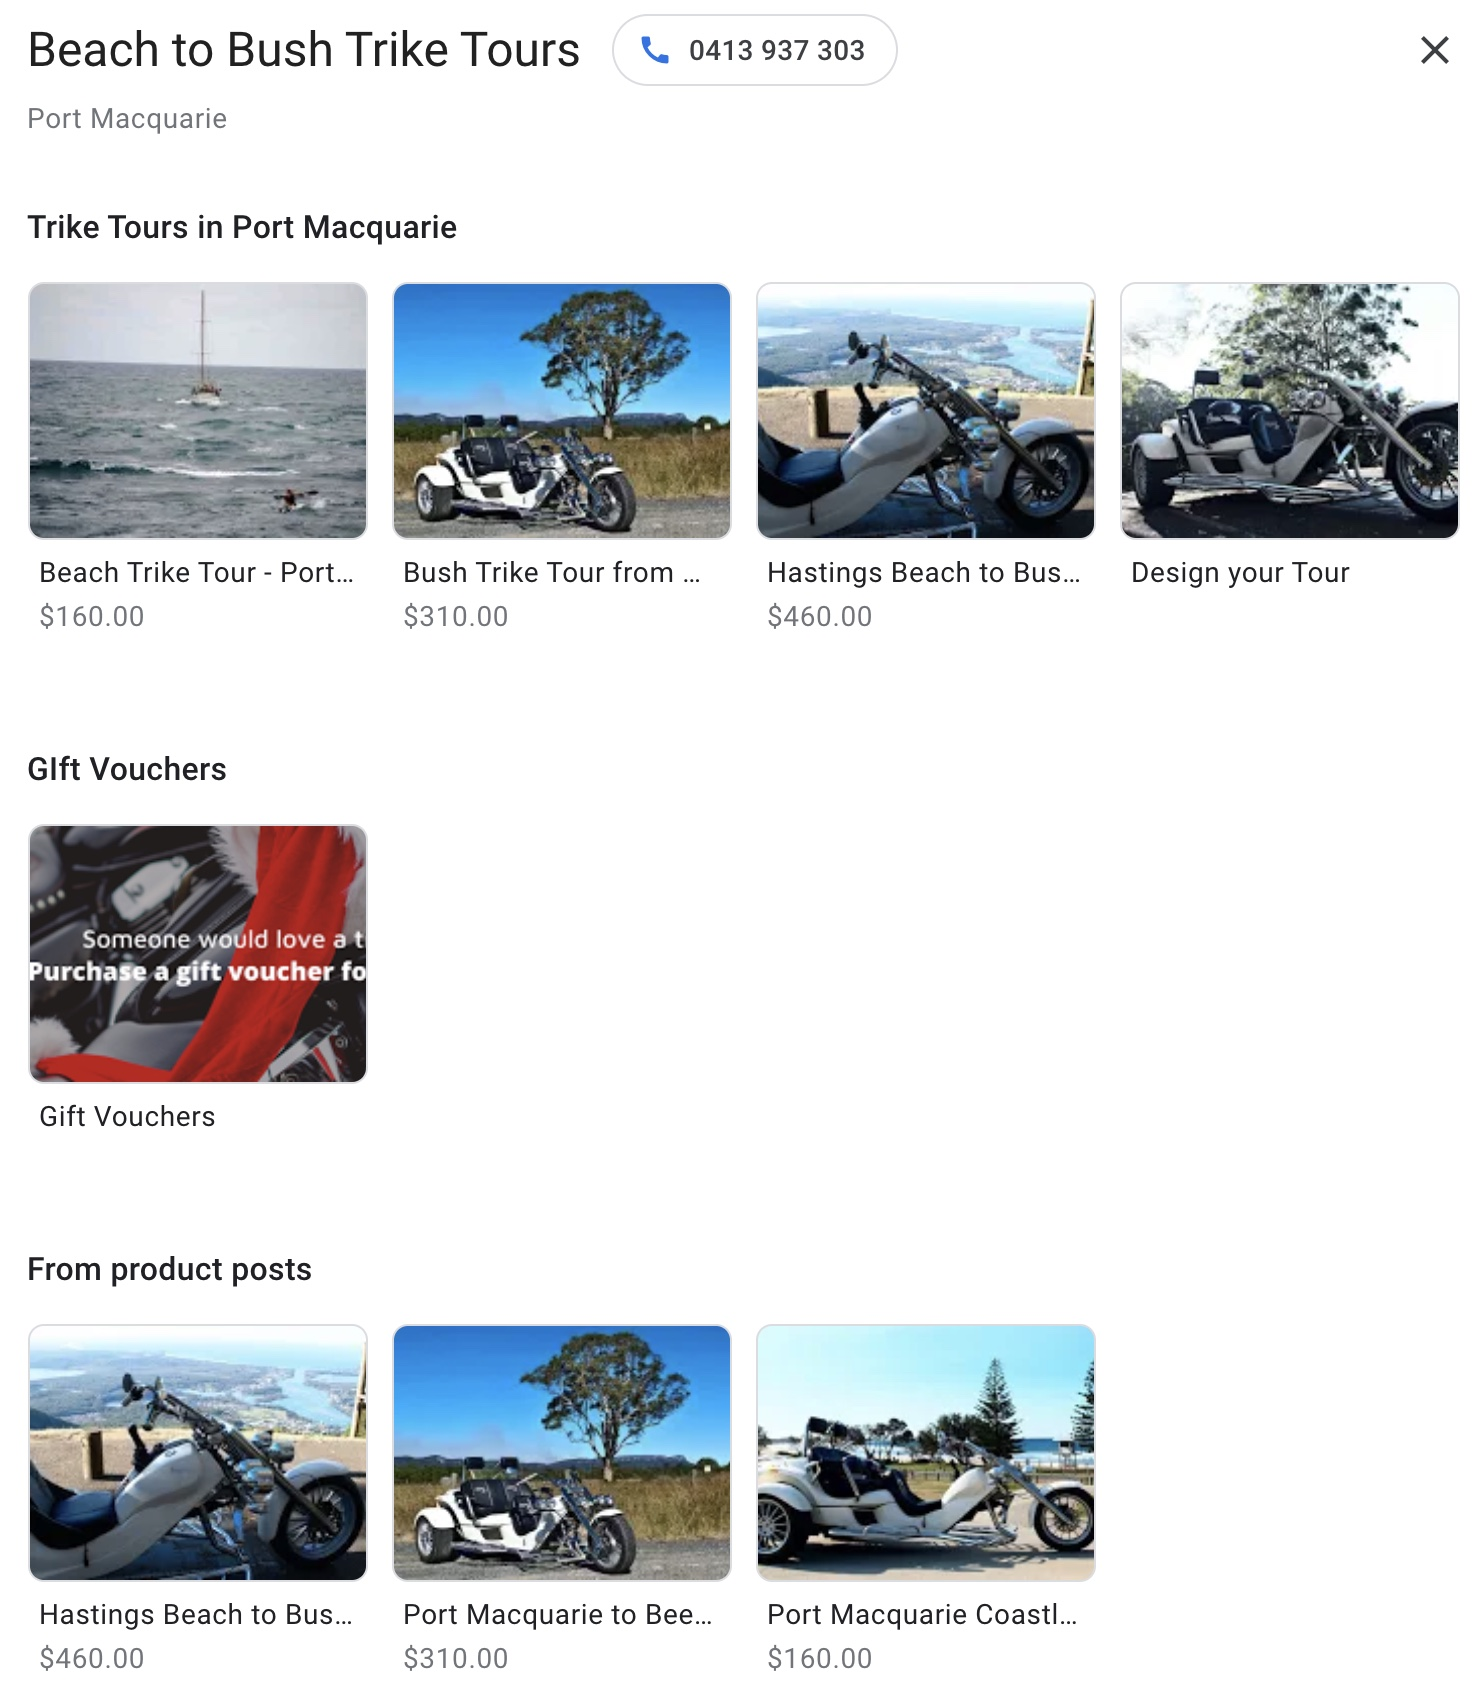 Beach to Bush Trike tours Promotions set up on Google My Business, by Vermilion Pinstripes